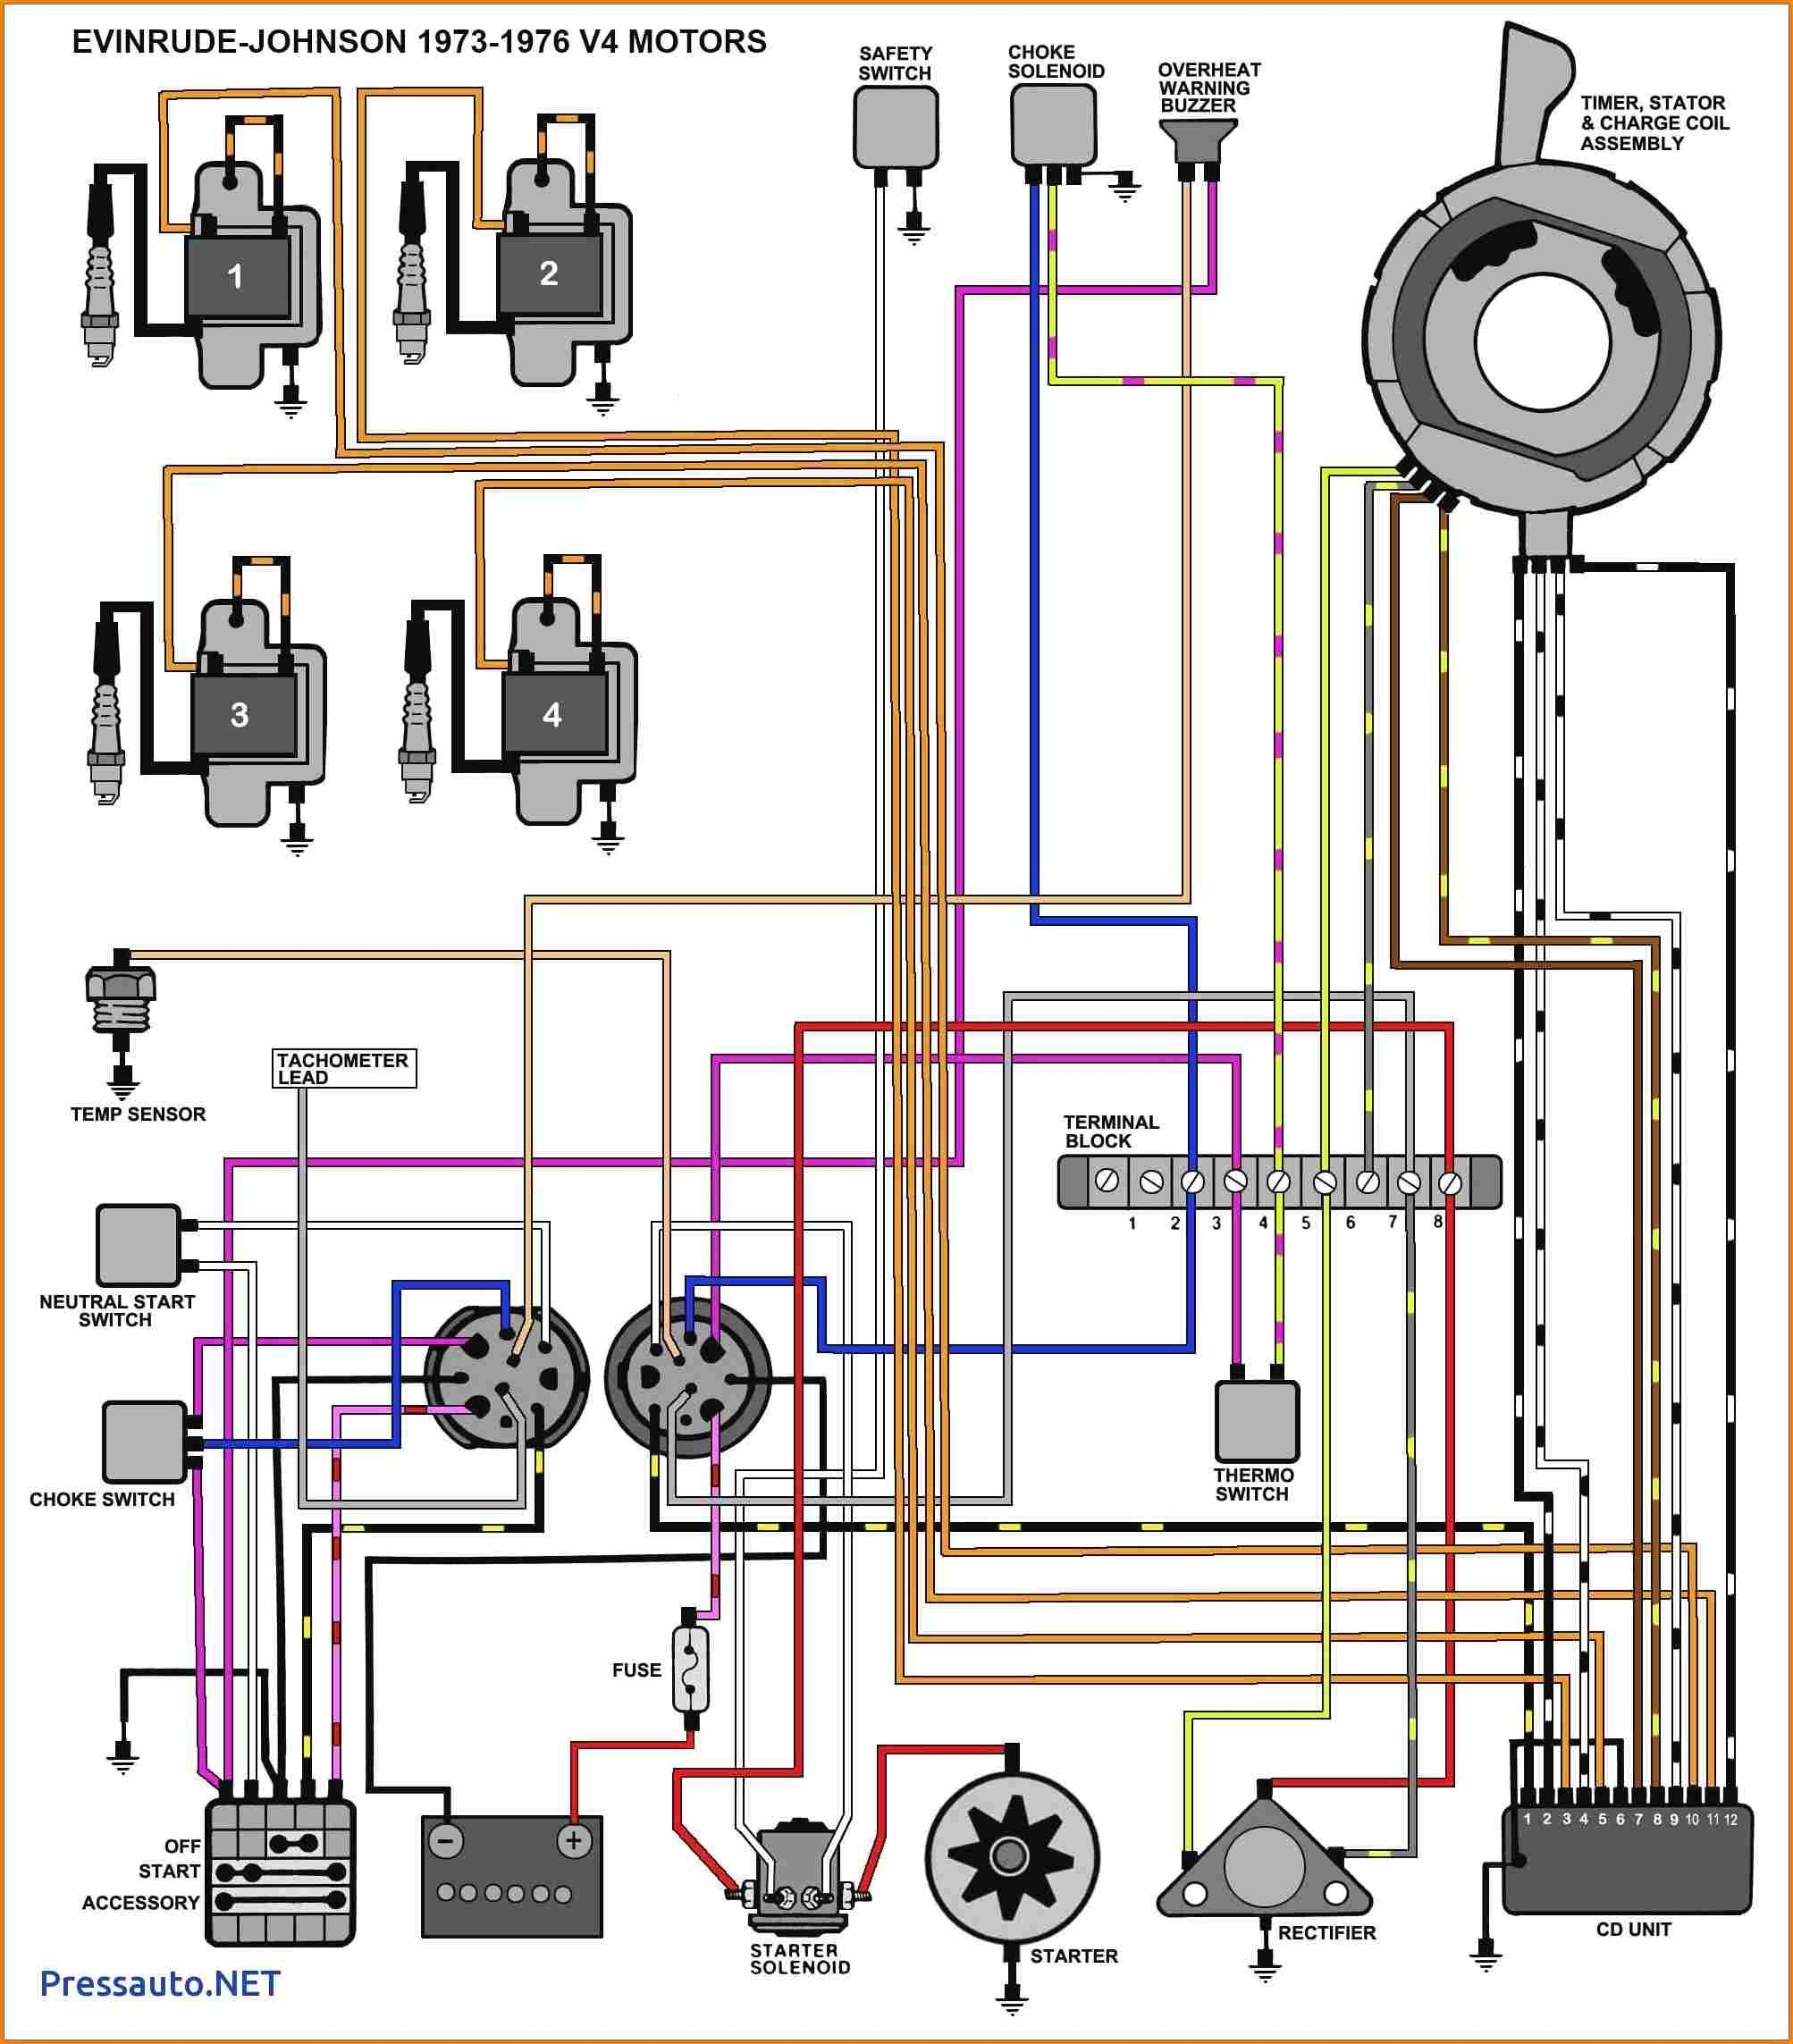 Johnson Ignition Switch Wiring Diagram | Manual E-Books - Johnson Ignition Switch Wiring Diagram